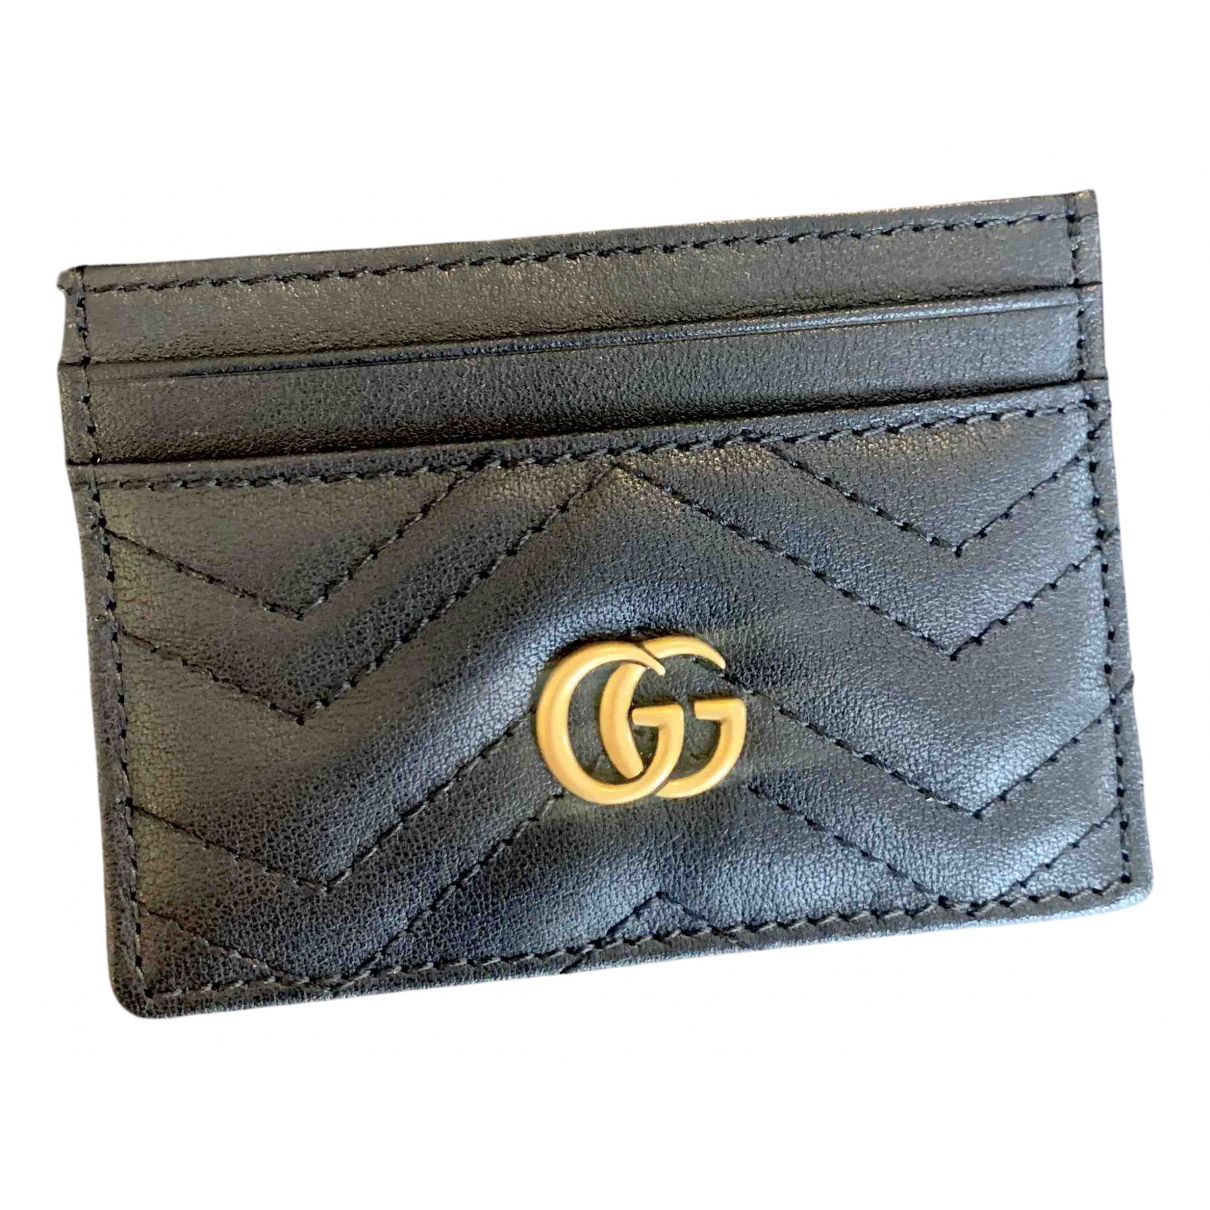 Gucci Marmont Black Leather Purses, wallet & cases for Women N